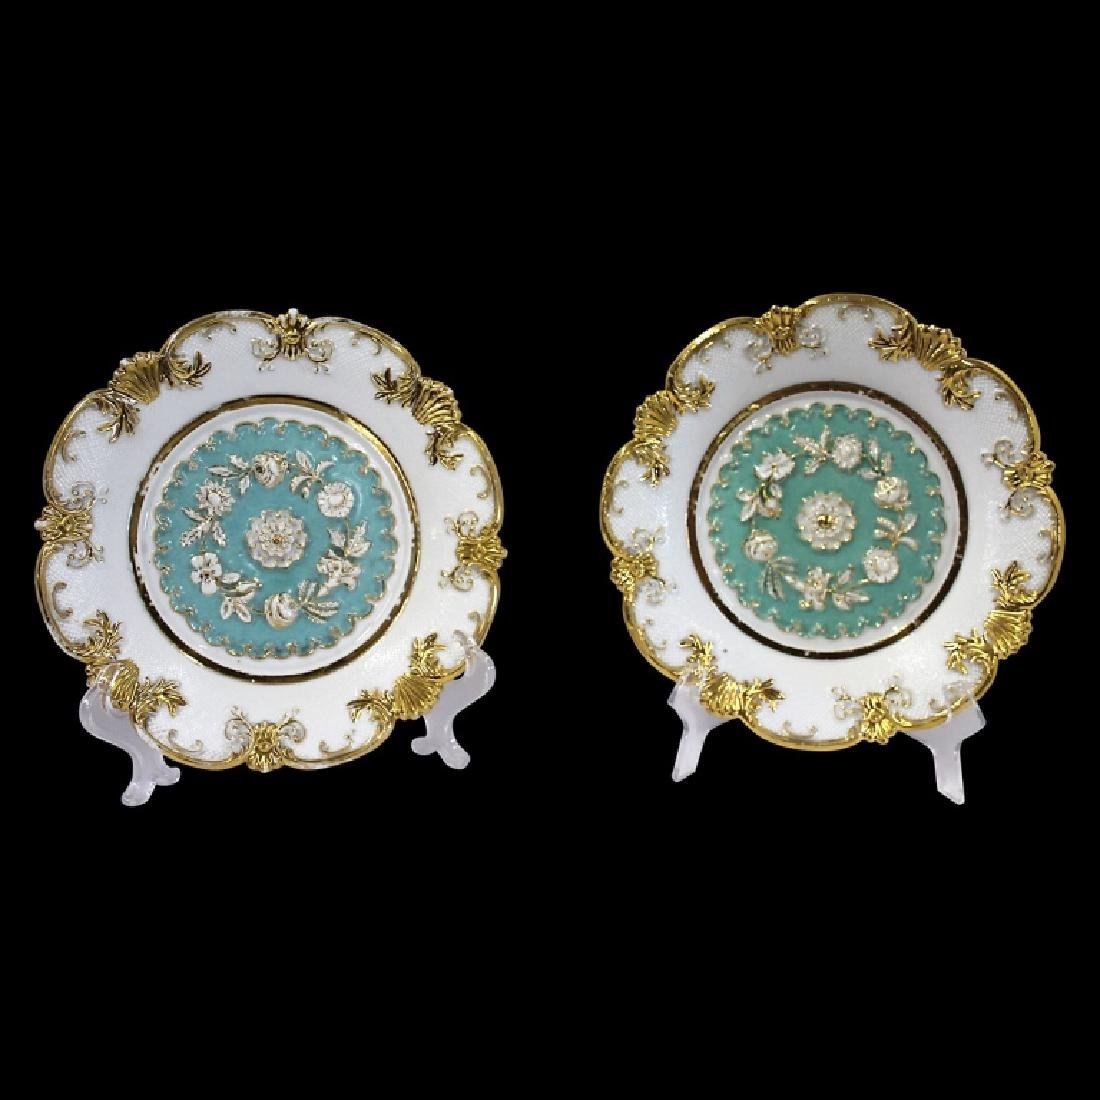 Pair of Meissen Baroque Style Plates